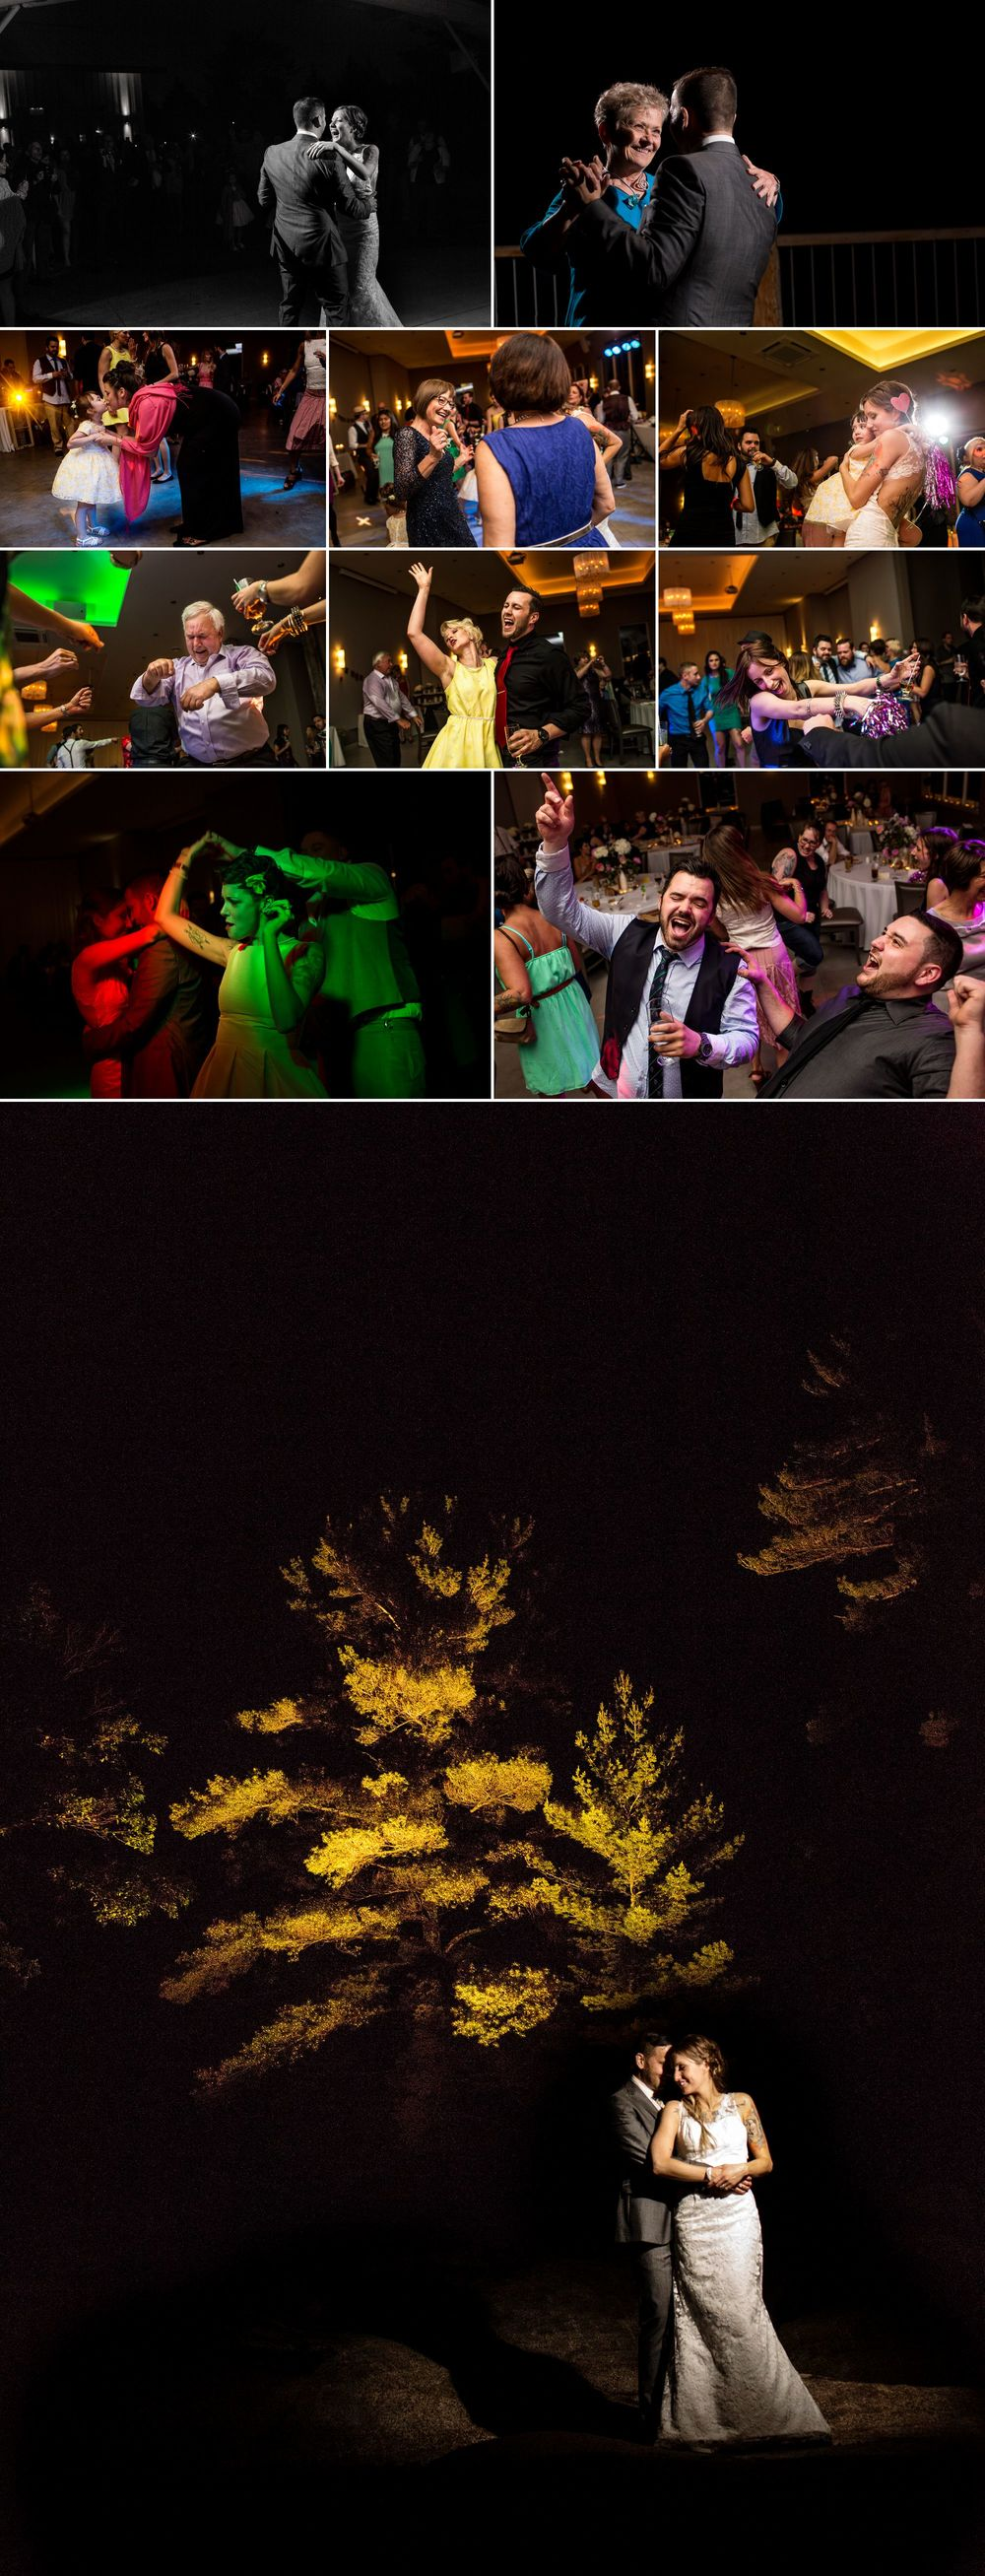 nighttime wedding photographs at le belvedere